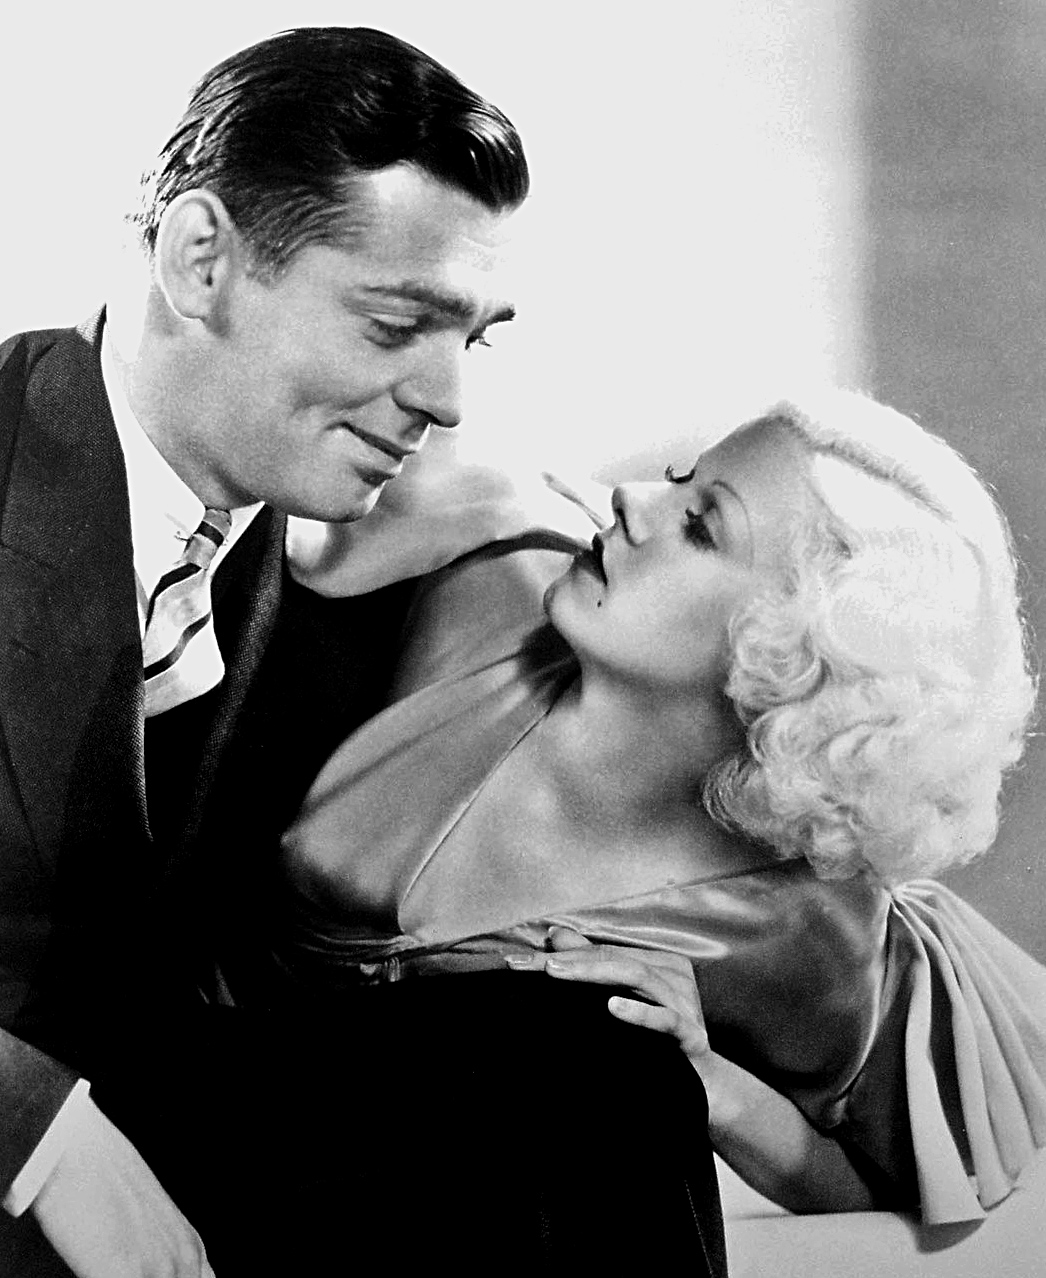 https://i1.wp.com/upload.wikimedia.org/wikipedia/commons/0/07/Gable-Harlow.JPG